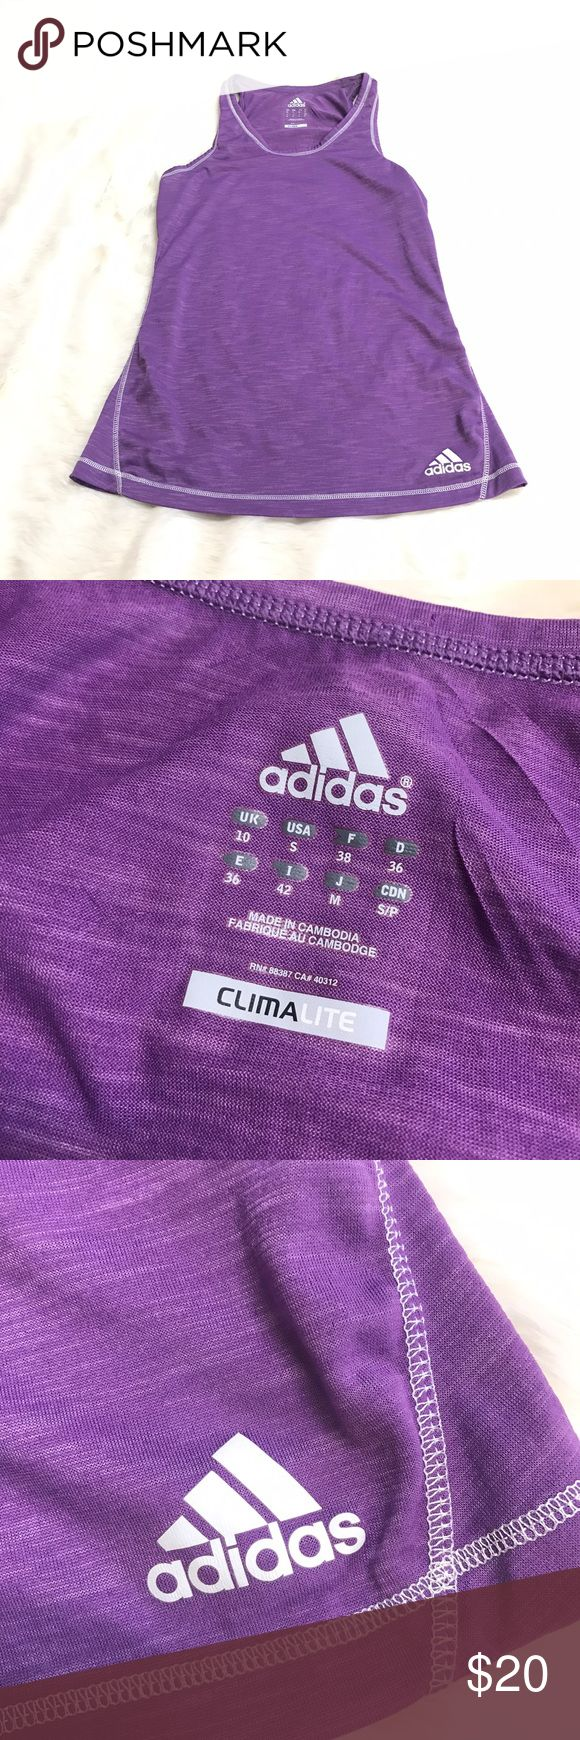 Adidas Small Purple See Through Tank Top Climalite Good condition. A little lighter Purple than pics perceive. See pics for measurements. Adidas Tops Tank Tops